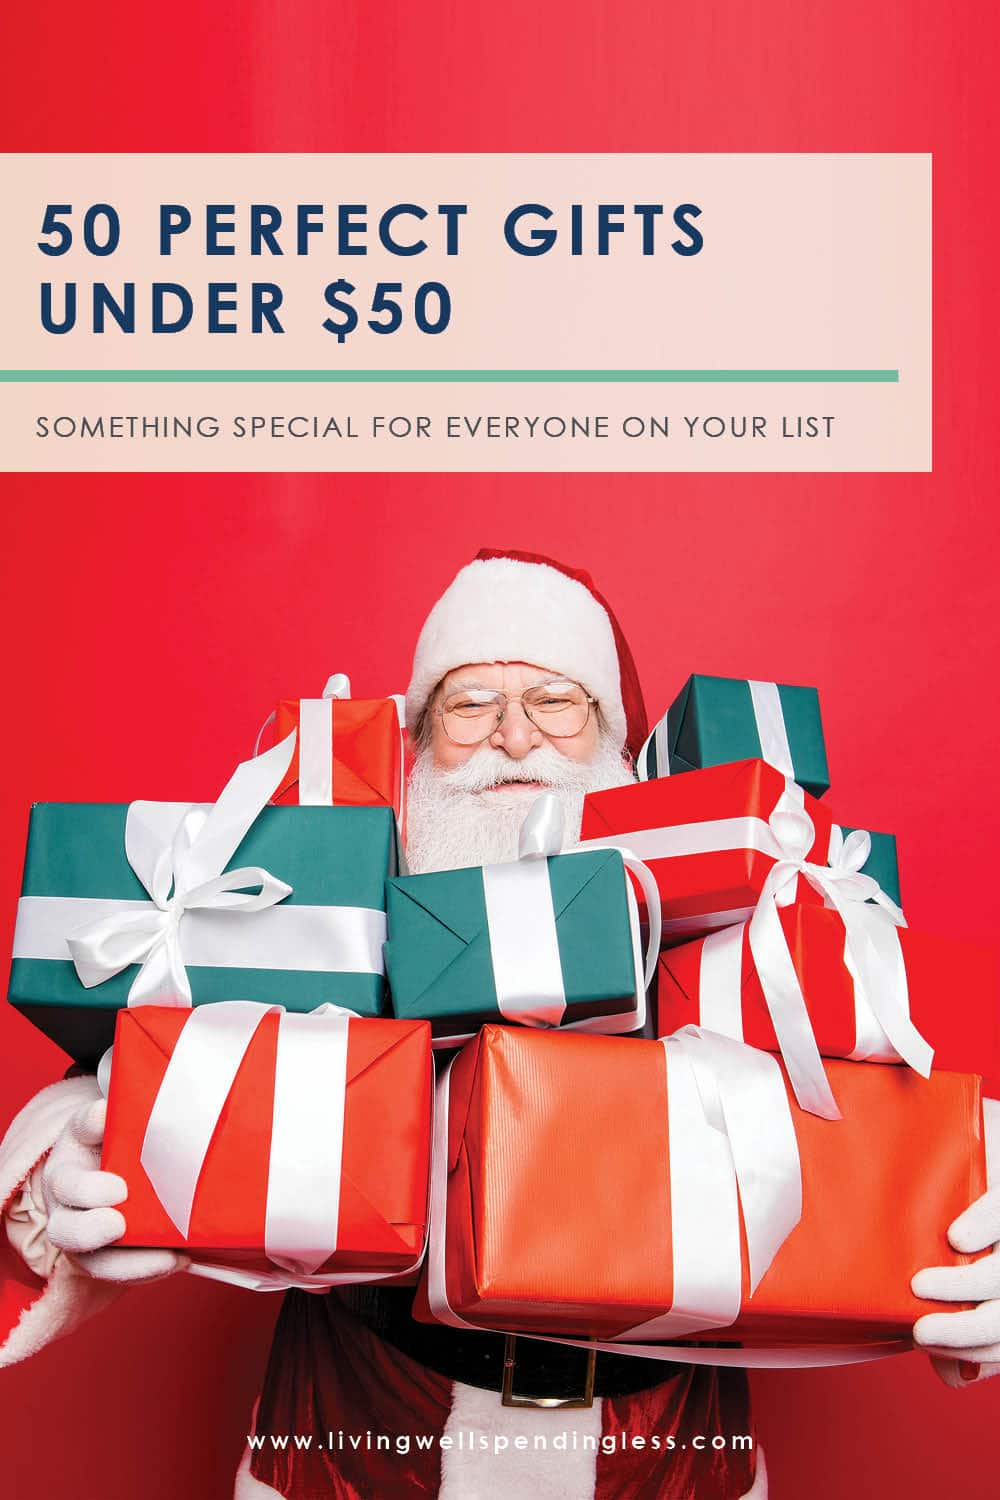 Searching for the perfect gift? Look no further than this ULTIMATE online holiday shopping guide! Our team spent more than 2 weeks competing to find the very BEST gifts in every category - all so you could avoid the mall this year! (You're welcome!) Don't miss these 50 perfect gifts under $50 for every person on your list! #shopping #shoppingtips #giftguides #holiday #shoppingguide #christmas #holidays